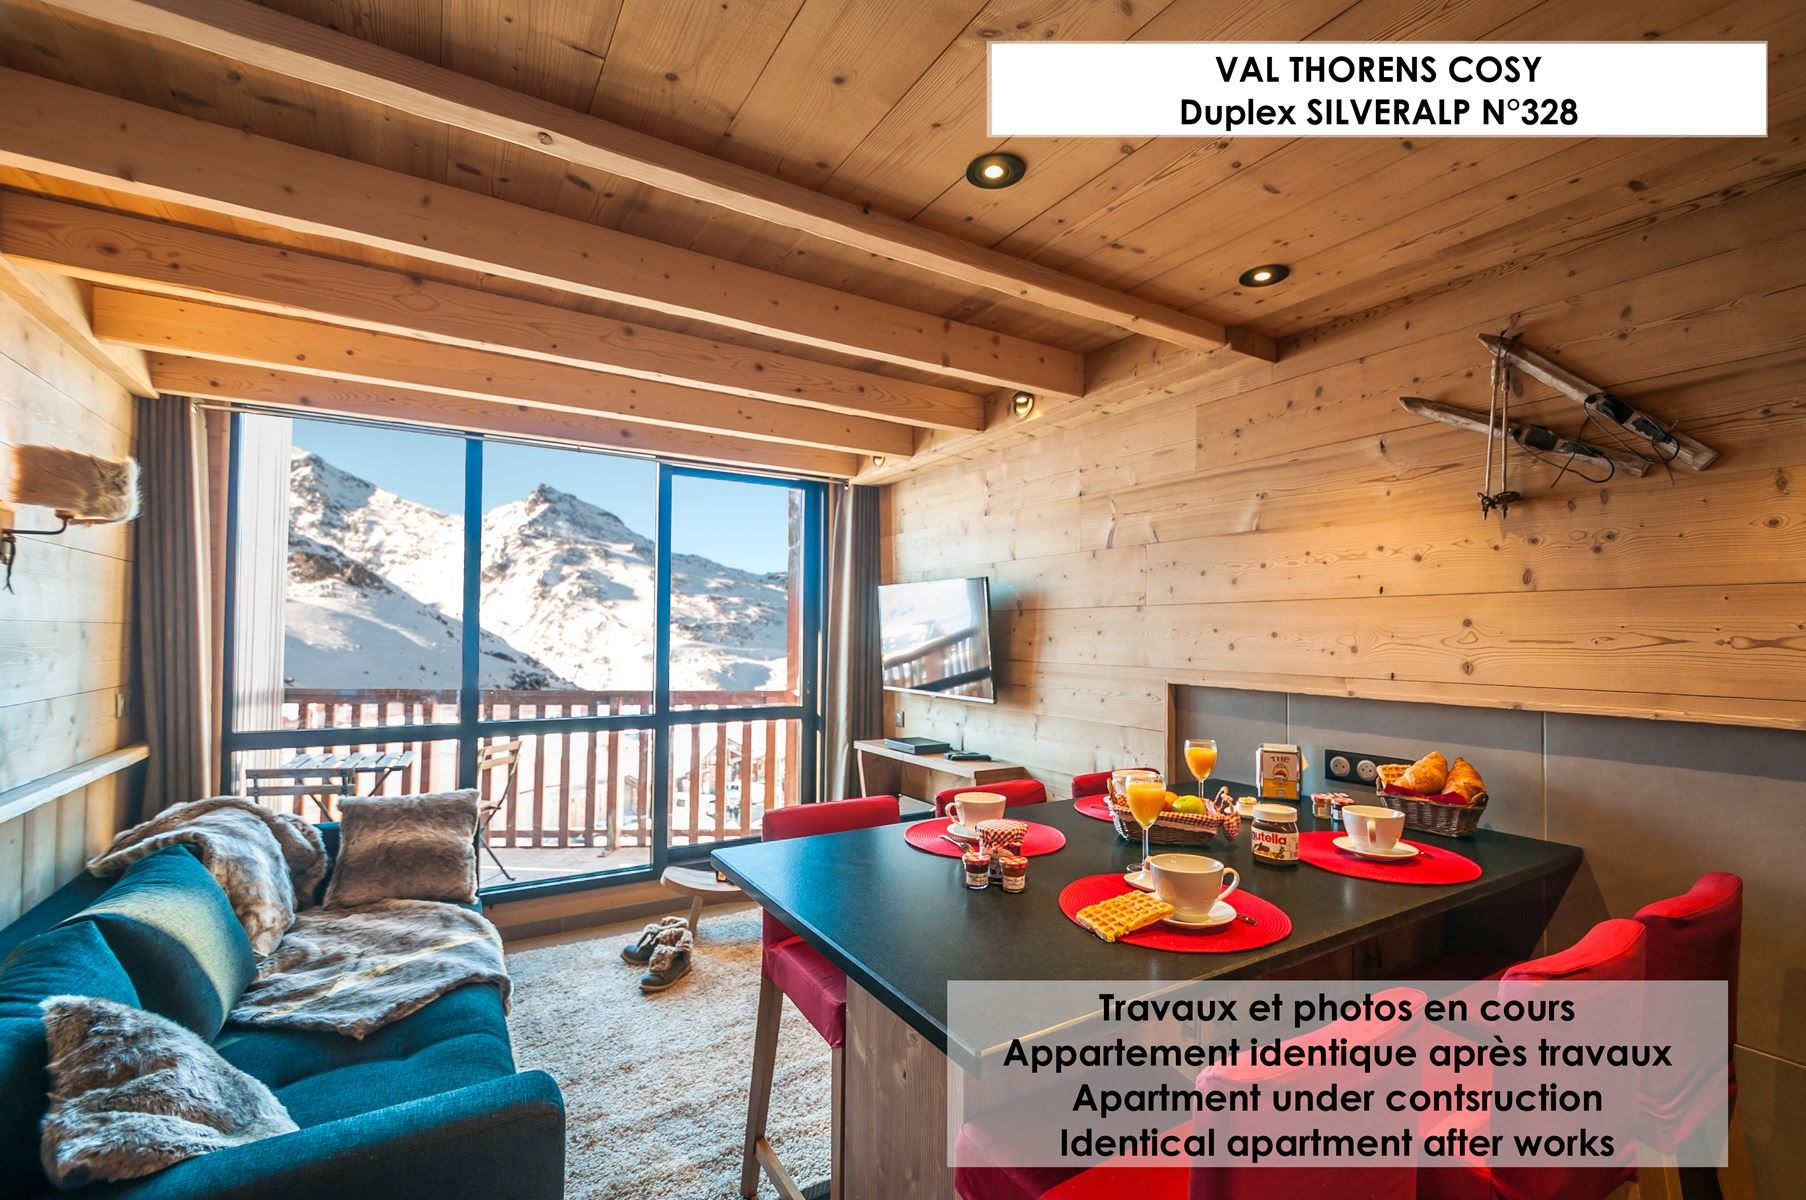 SILVERALP 328 / APPARTEMENT 4 PIECES 6 PERSONNES - 4 FLOCONS OR - ADA